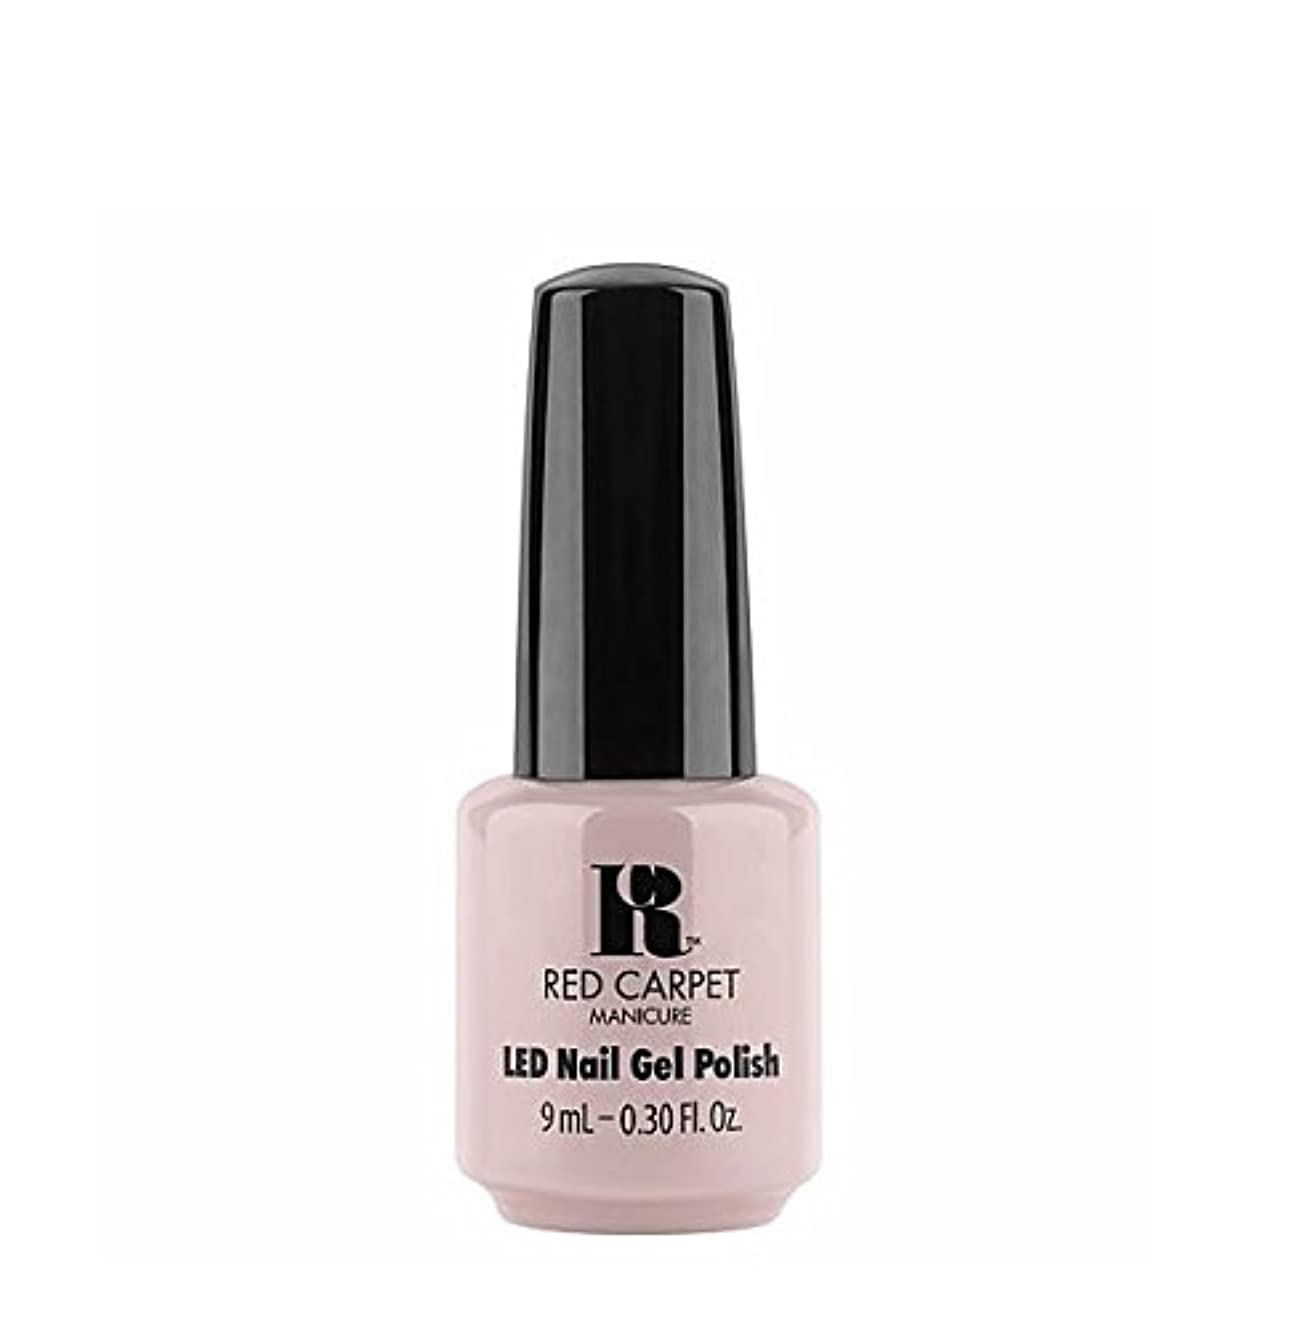 Red Carpet Manicure LED Gel Polish - Cozy In the New Chic - 9 ml/0.30 oz